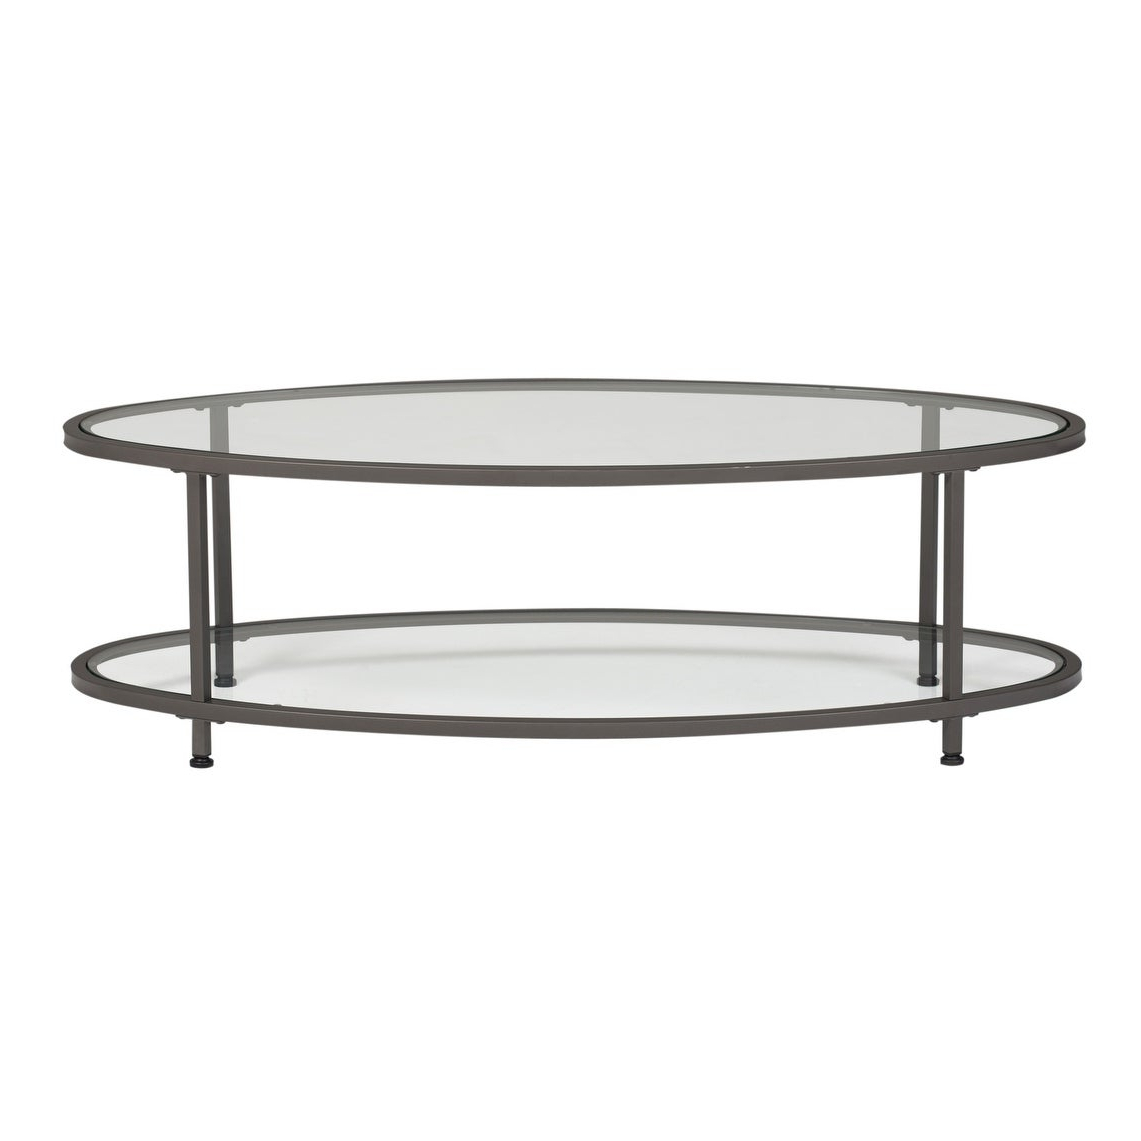 """Carbon Loft Heimlich 48"""" Oval Coffee Table Throughout Fashionable Carbon Loft Heimlich Pewter Steel/glass Round Coffee Tables (View 4 of 20)"""